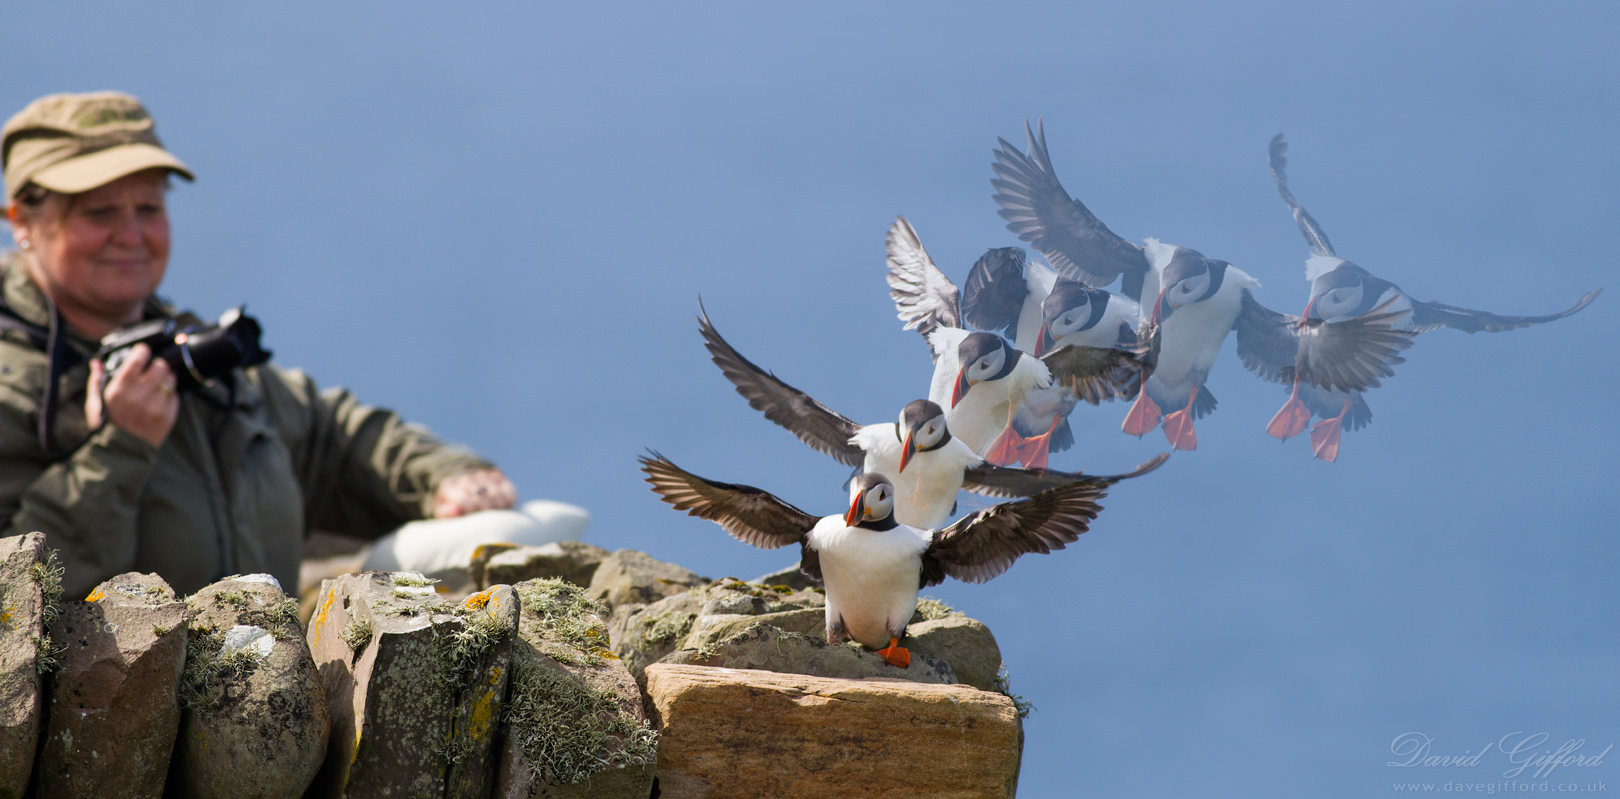 Puffin Photo Opportunity